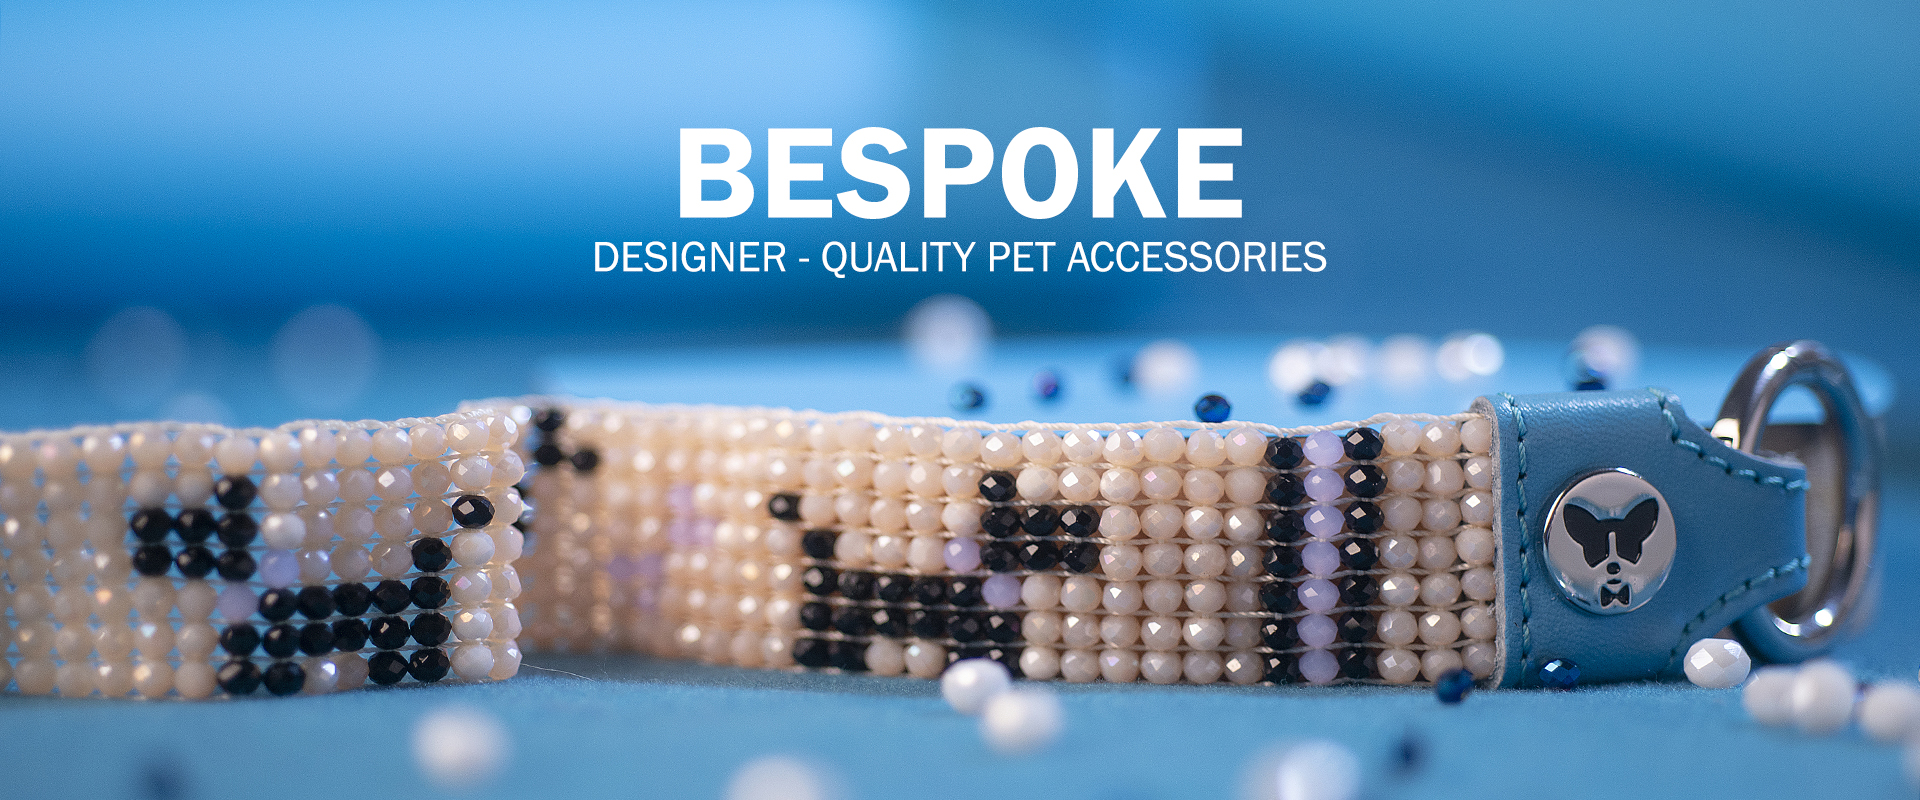 Bespoke | Designer-quality pet accessories